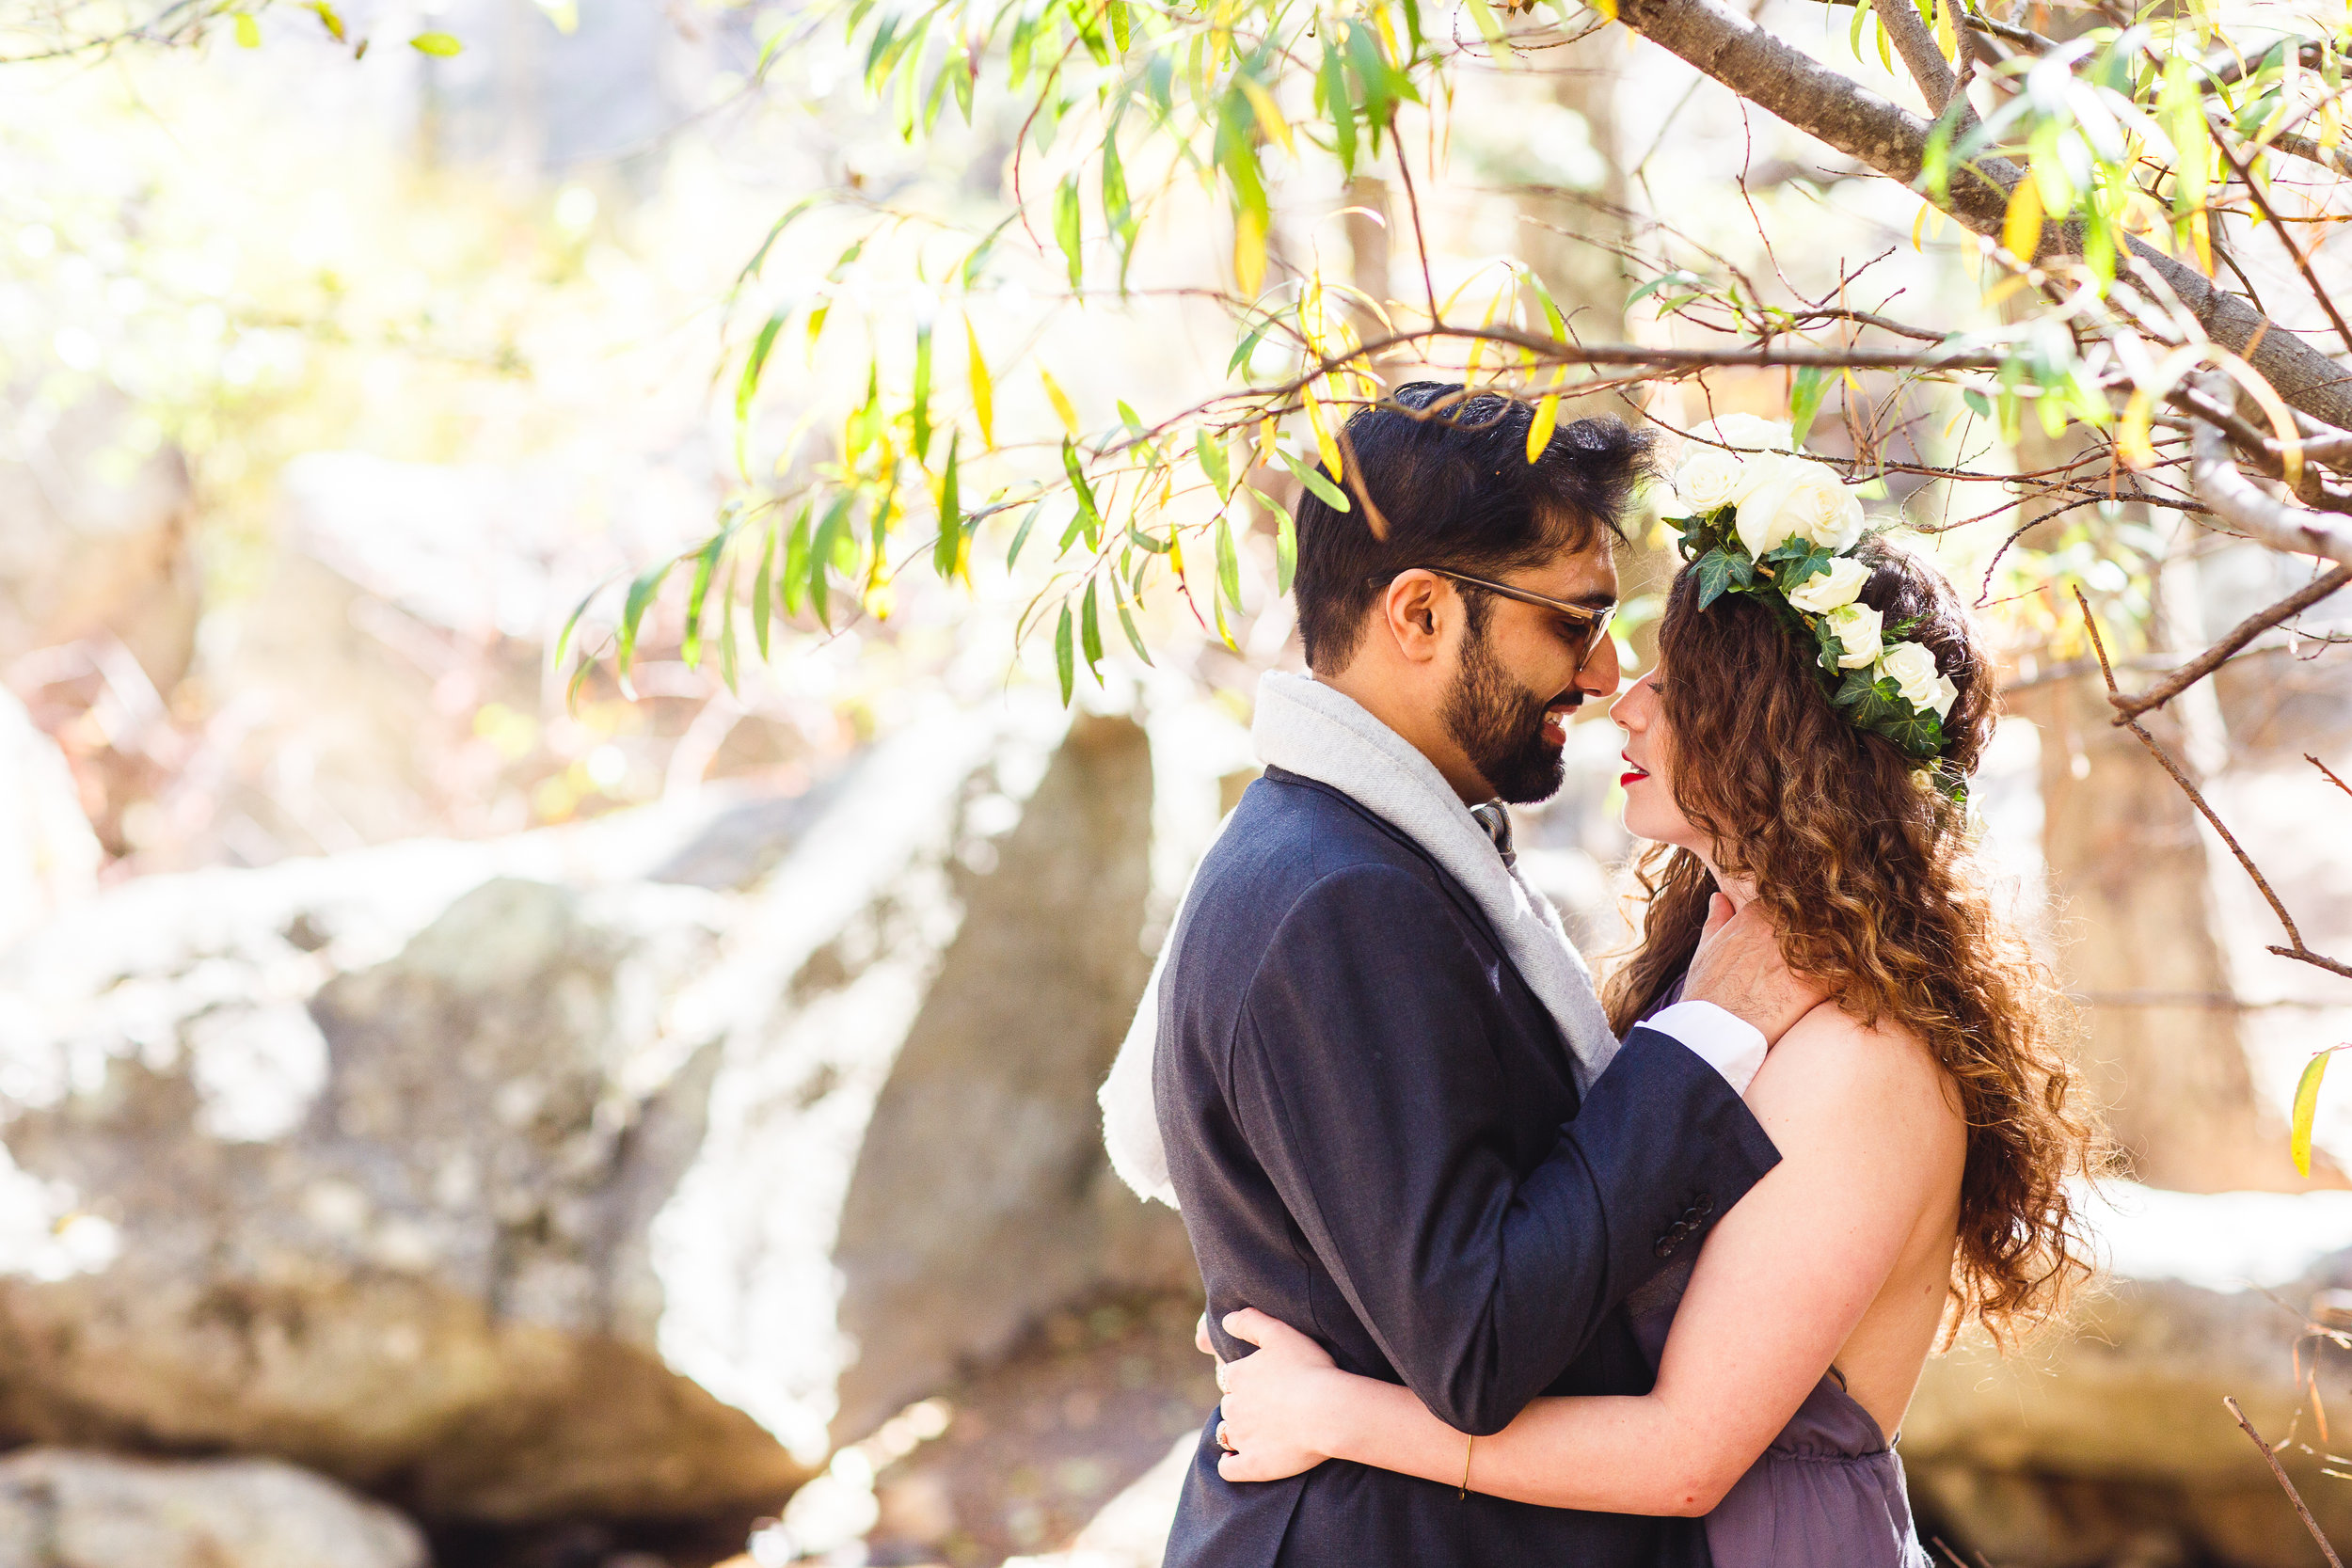 mt-lemmon-mountain-wedding-photography-arizona-elopement-hippie-ceremony-laura-k-moore-photography